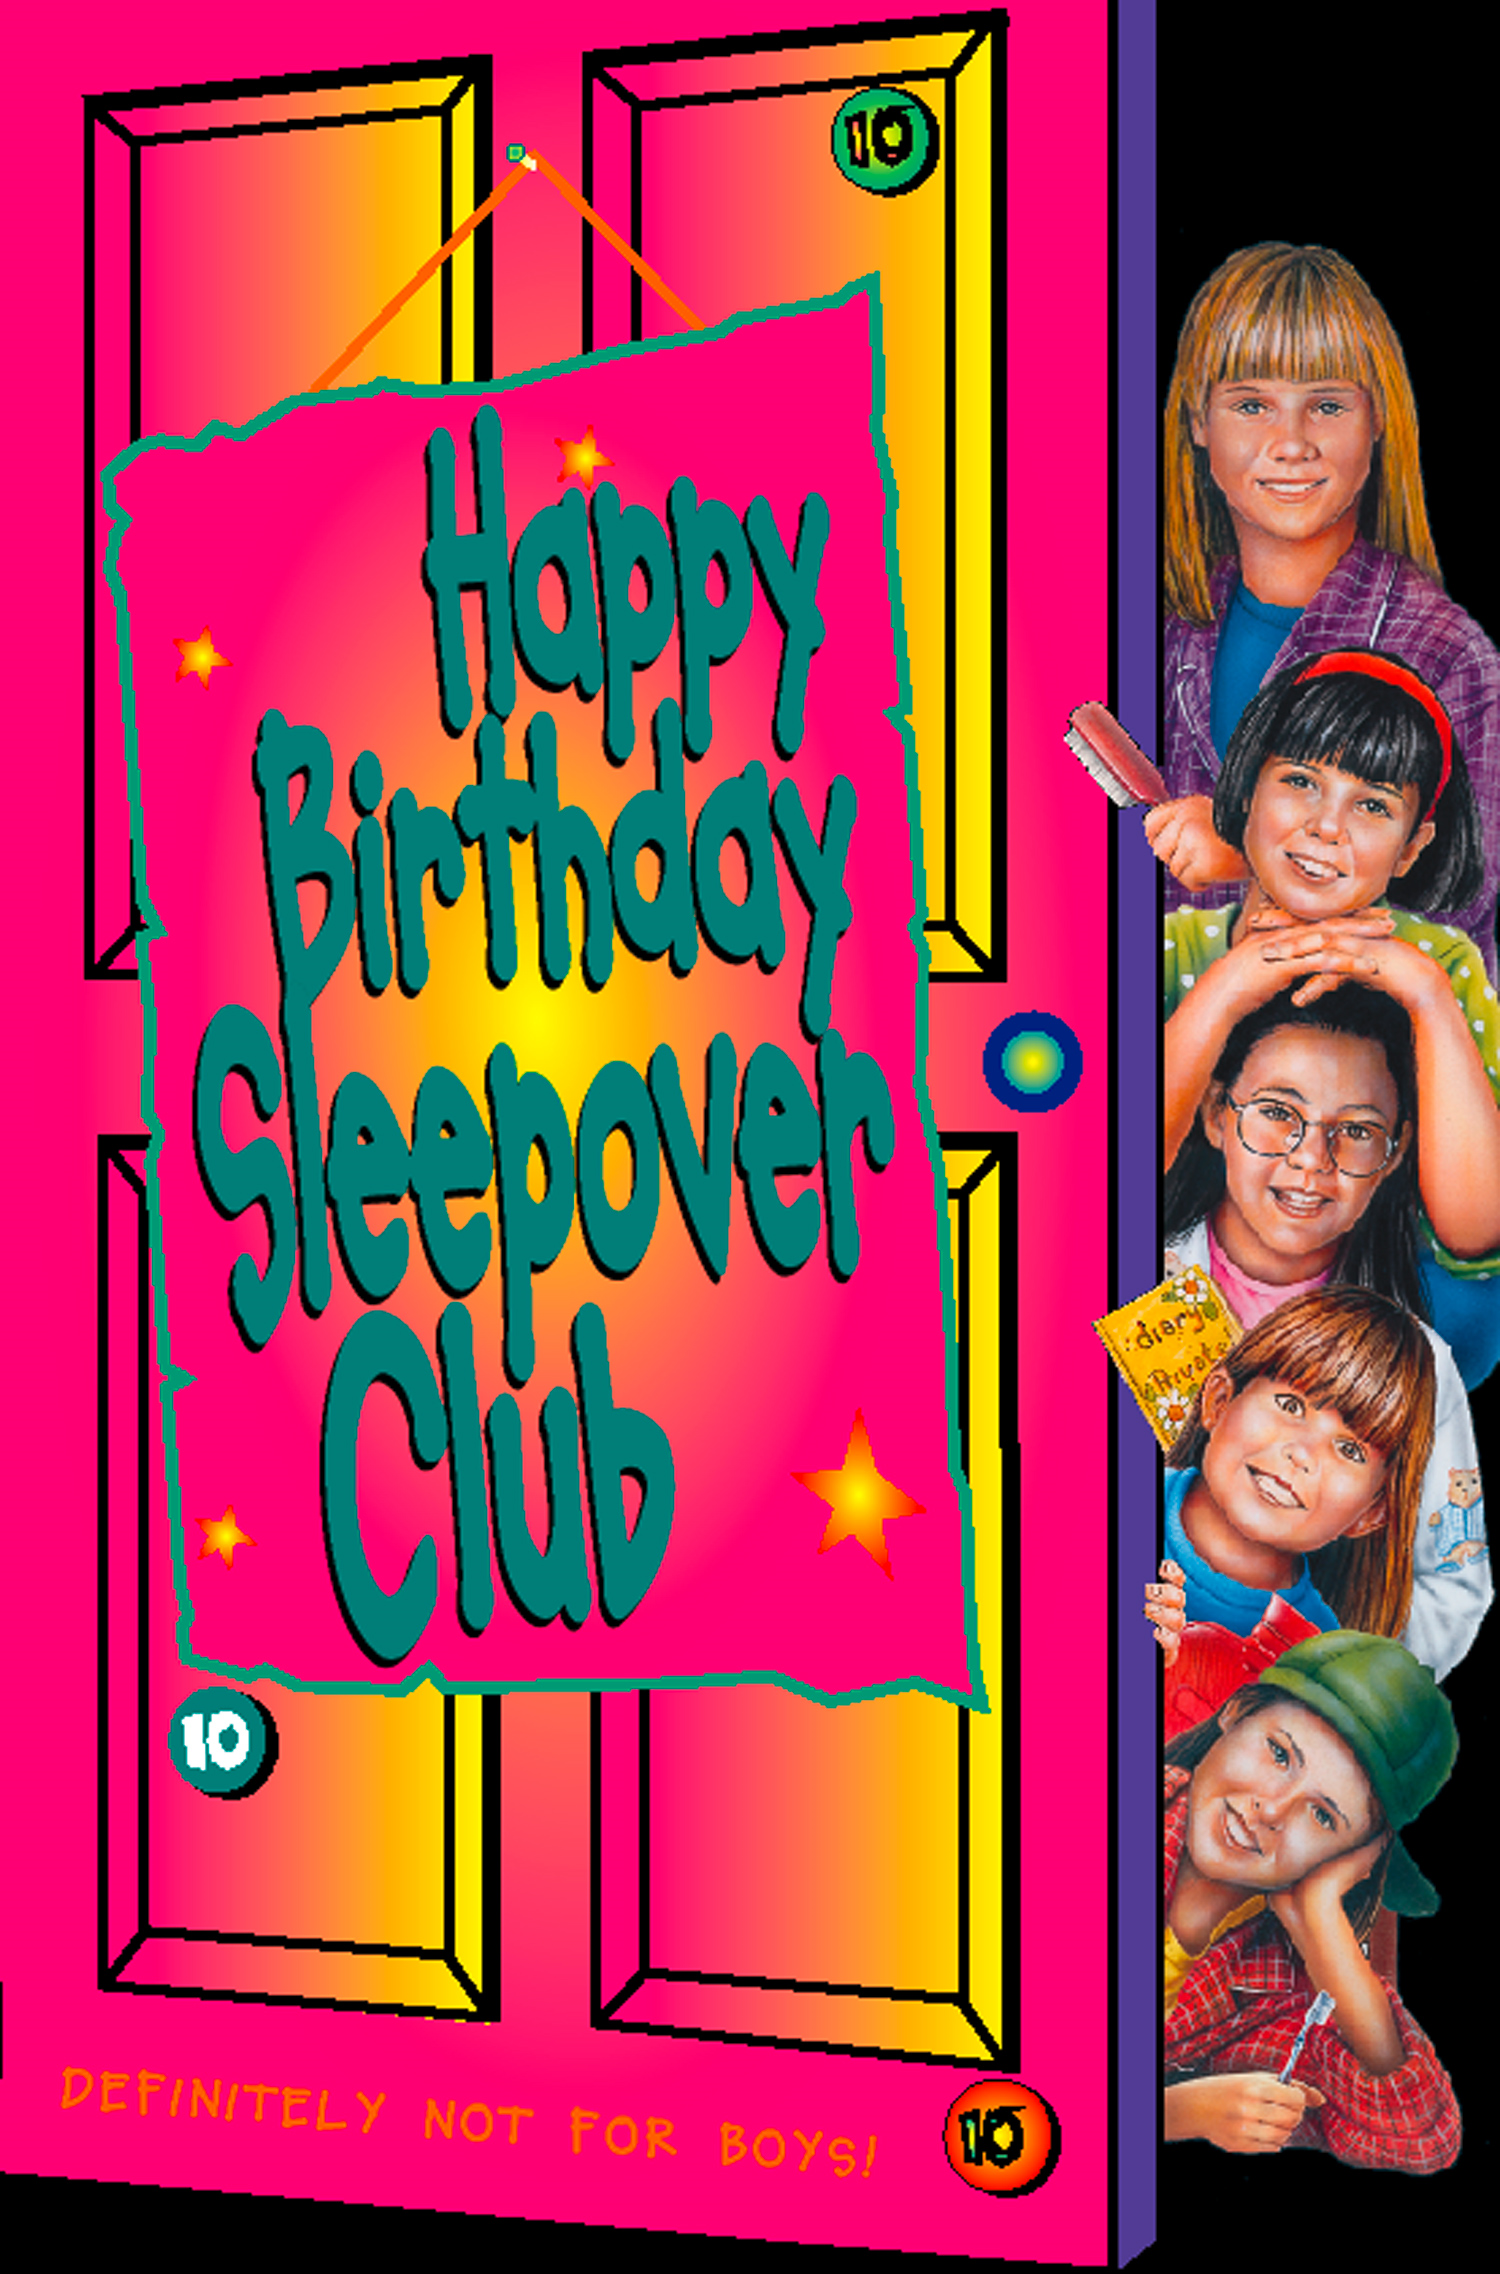 Happy Birthday, Sleepover Club (The Sleepover Club, Book 10)